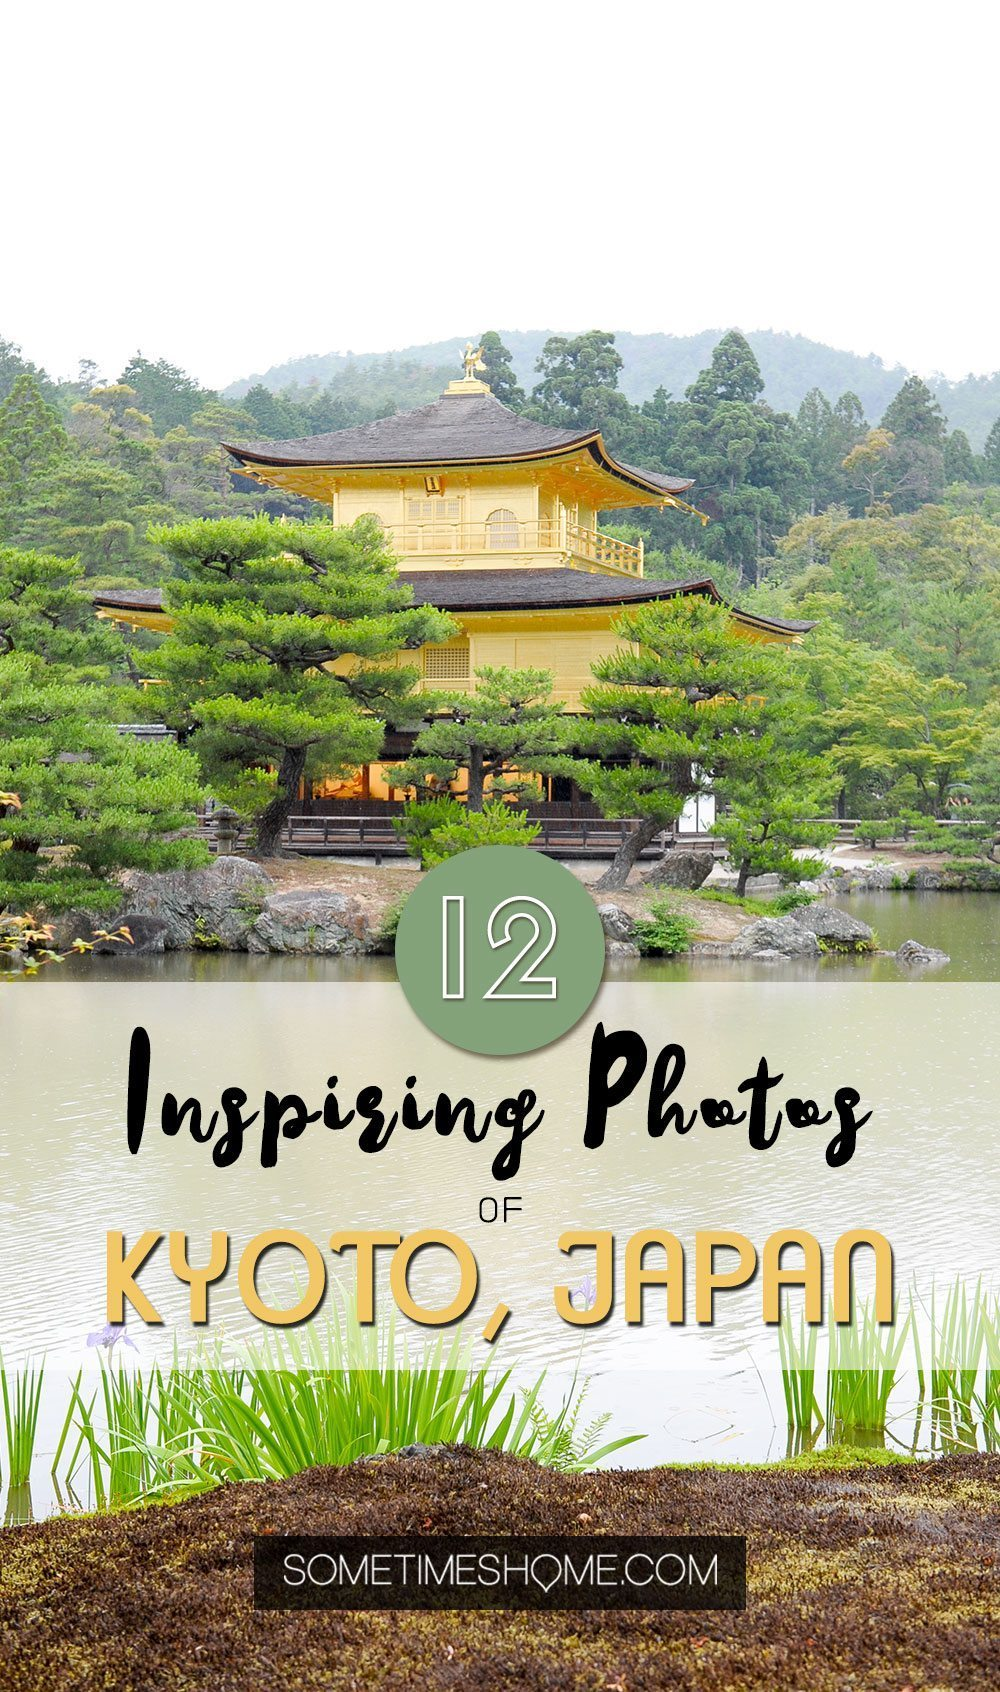 12 Must-See Inspiring Photos of Kyoto Japan on Sometimes Home travel blog. From Pontocho Alley, to the Gion district, to the Golden Temple, Imperial Palace, Arashiyama River and more.